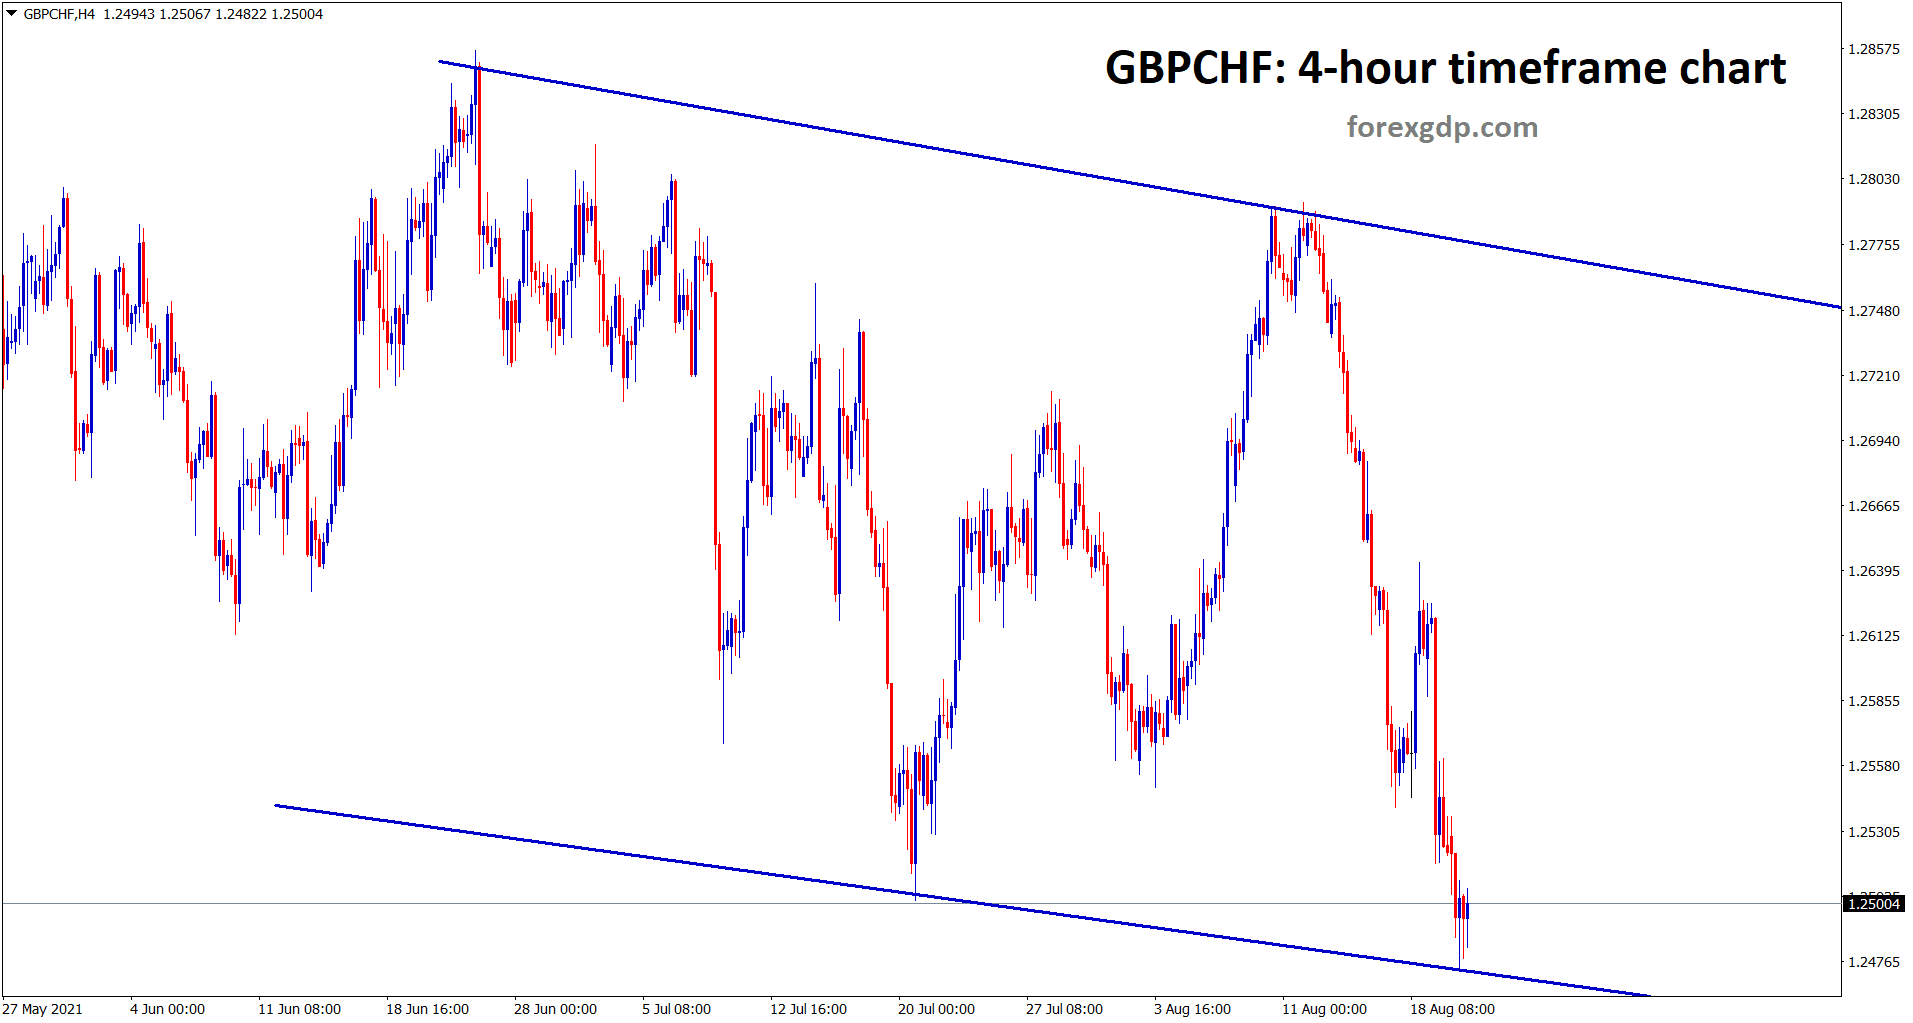 GBPCHF hits the lower low of the descending channel wait for reversal or breakout.